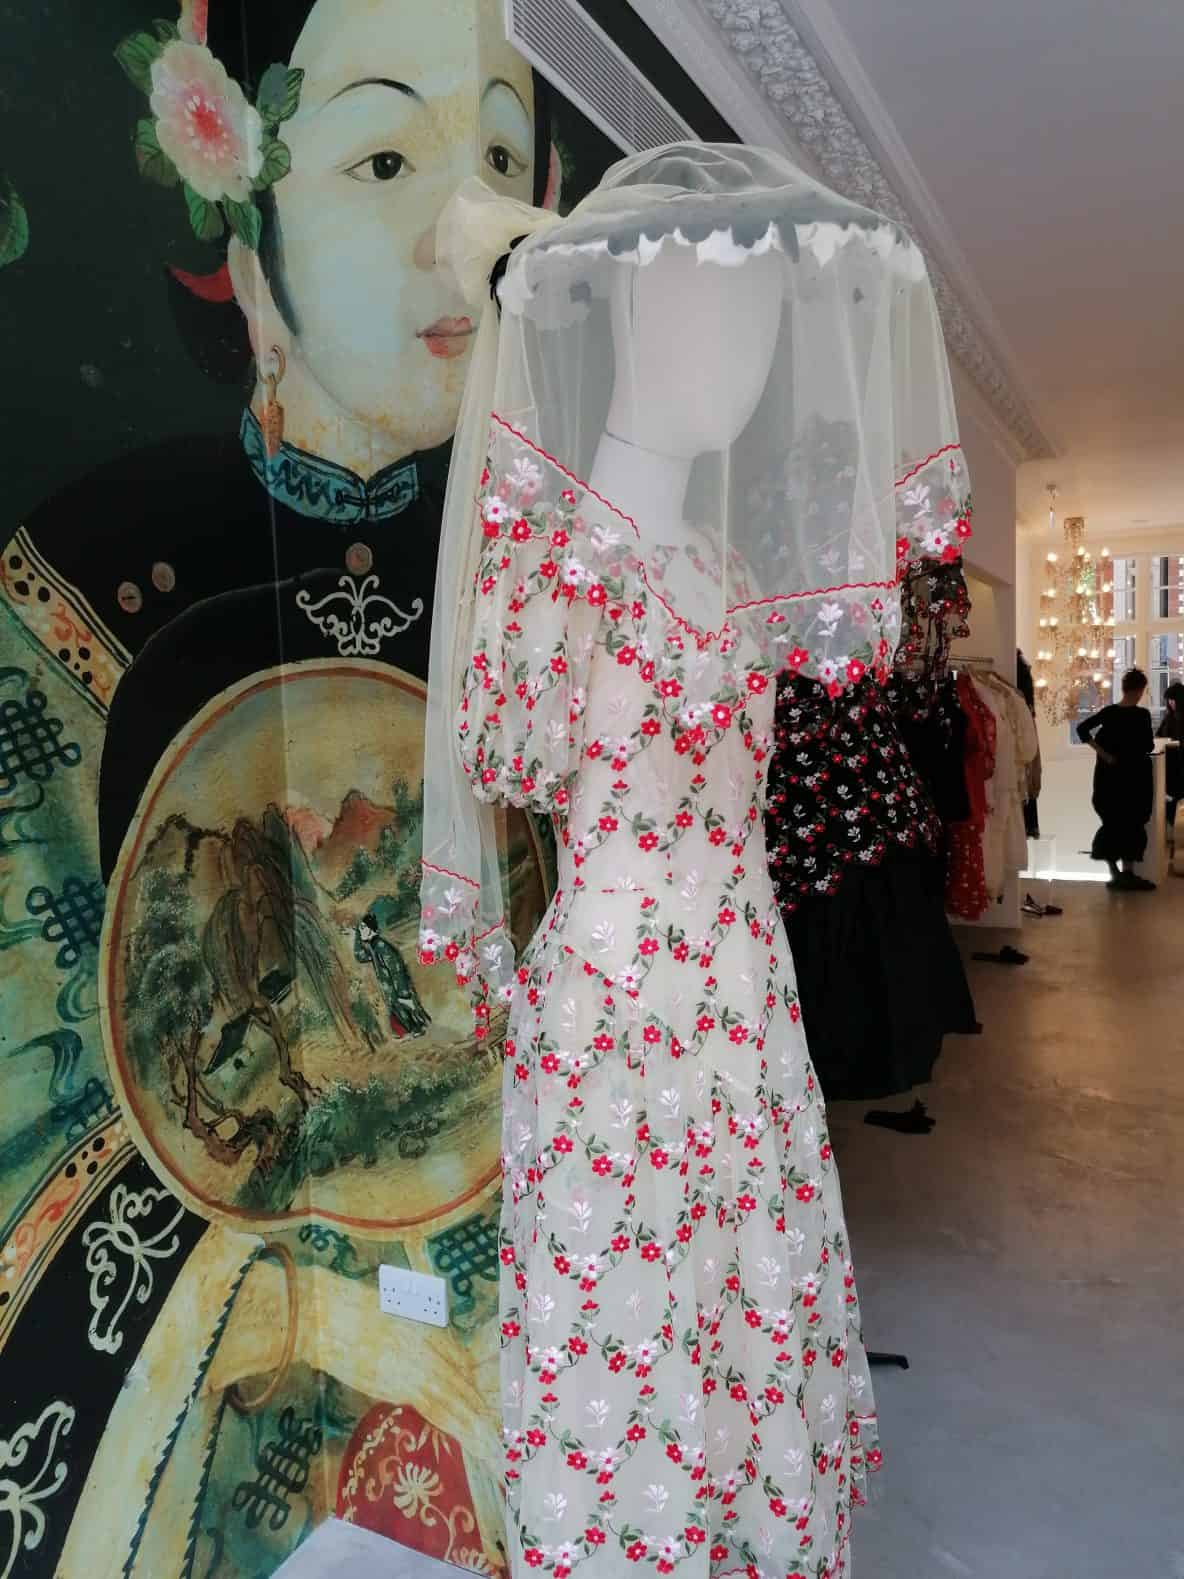 dress by fashion designer Simone Rocha, shop on Mount Street, Mayfair, Latest in Design Tour, Fashion Tours London